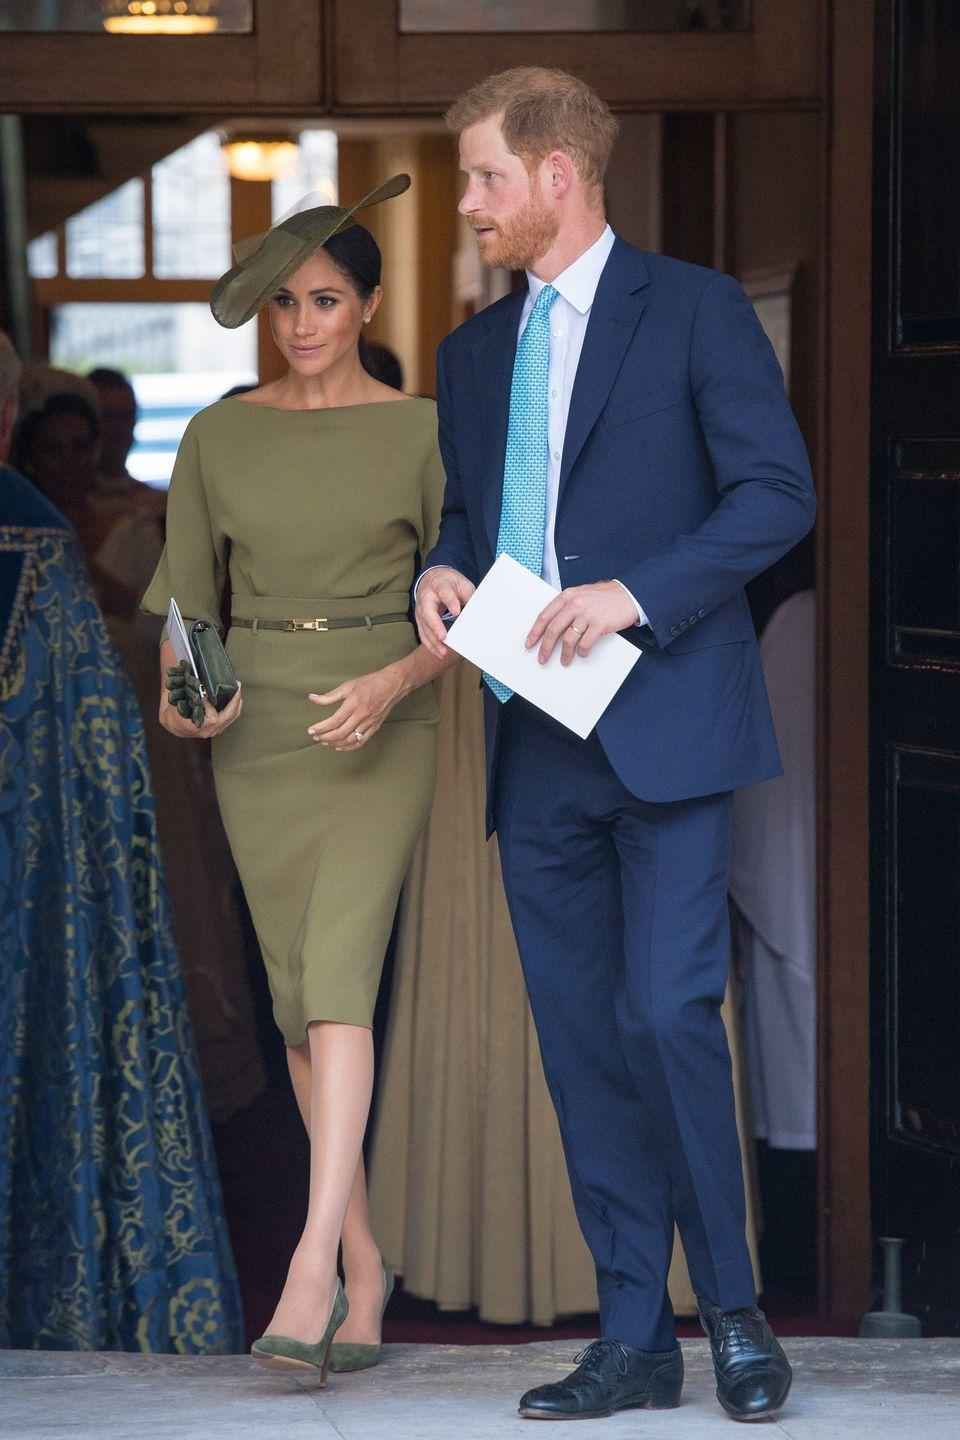 """<p>These two just can't get enough of each other. When entering behind the Duke and Duchess of Cambridge into St. James's Palace today, <a rel=""""nofollow noopener"""" href=""""https://twitter.com/RE_DailyMail/status/1016344245282762752"""" target=""""_blank"""" data-ylk=""""slk:footage"""" class=""""link rapid-noclick-resp"""">footage</a> captured by royal correspondent Rebecca English shows the two proudly holding hands. Usually, royals aren't so open and free with their affection - even though hand-holding during family events breaks no sort of protocol. But it looks like <a rel=""""nofollow noopener"""" href=""""https://www.goodhousekeeping.com/life/a22062475/meghan-markle-prince-harry-yellow-dress-pda/"""" target=""""_blank"""" data-ylk=""""slk:Harry and Meghan are rewriting the royal customs"""" class=""""link rapid-noclick-resp"""">Harry and Meghan are rewriting the royal customs</a> with every outing they attend - and we certainly don't mind. </p>"""